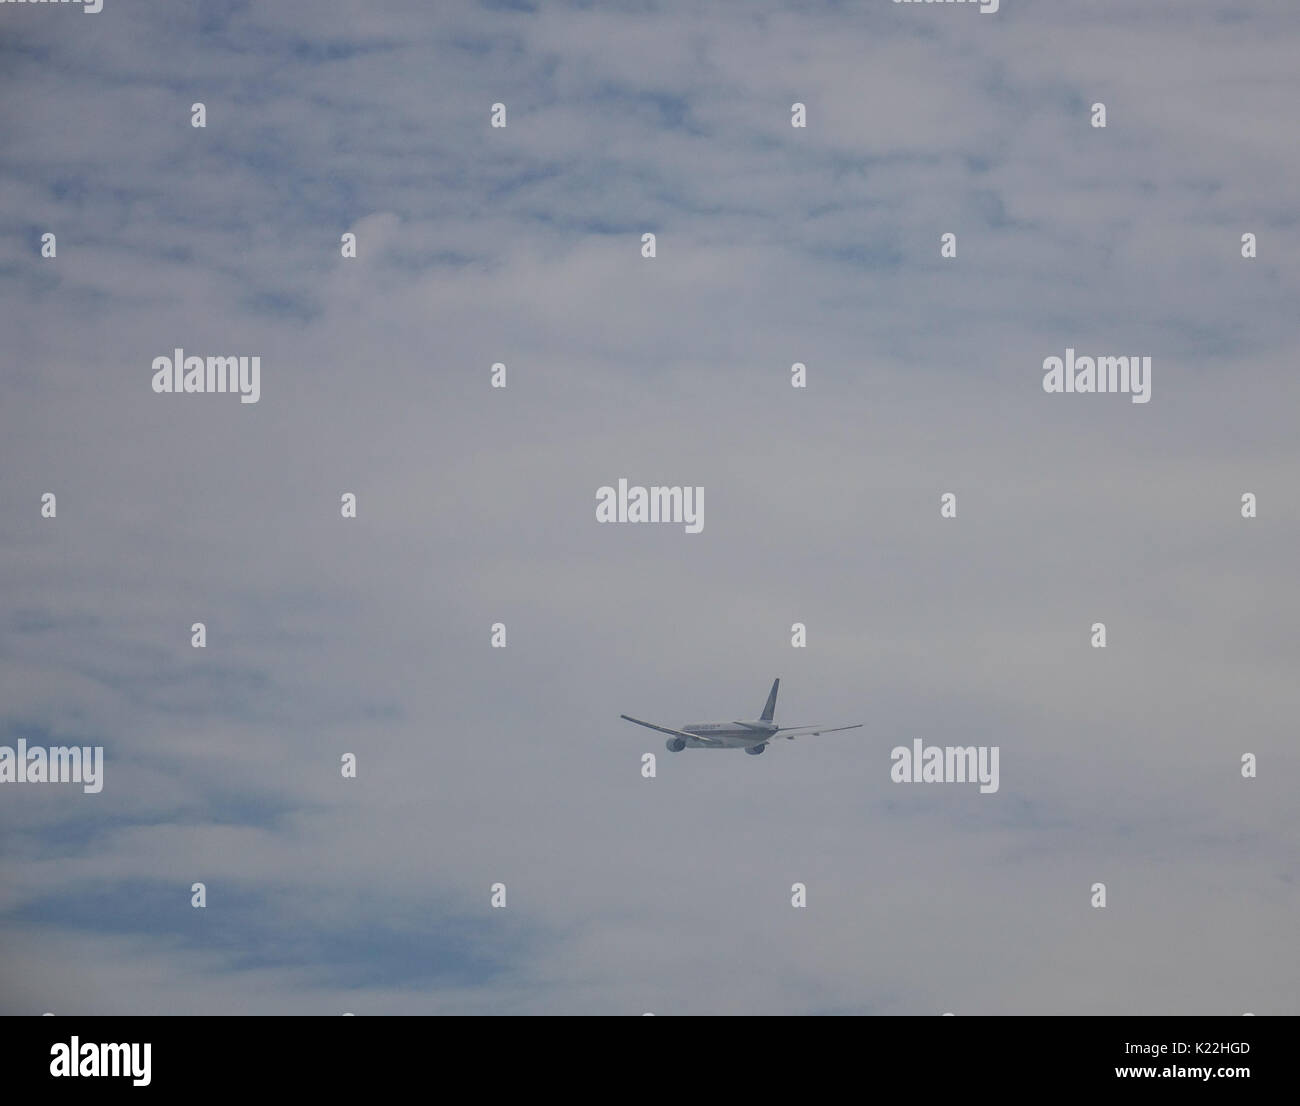 A civil aircraft flying in the sky at misty day in Singapore. - Stock Image